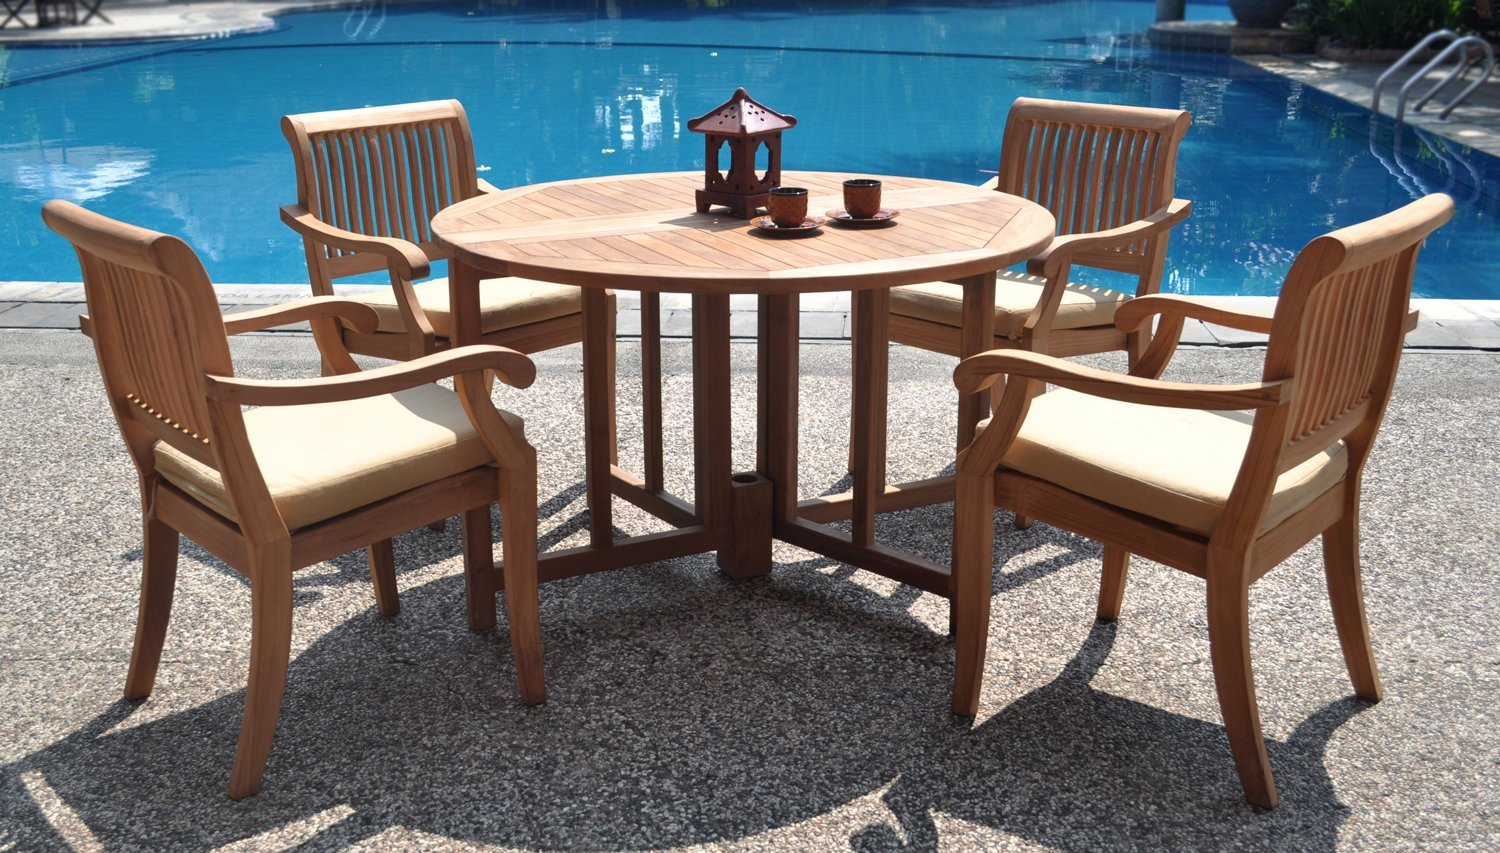 Outdoor wooden furniture archives wooden furniture hub for Inexpensive patio furniture